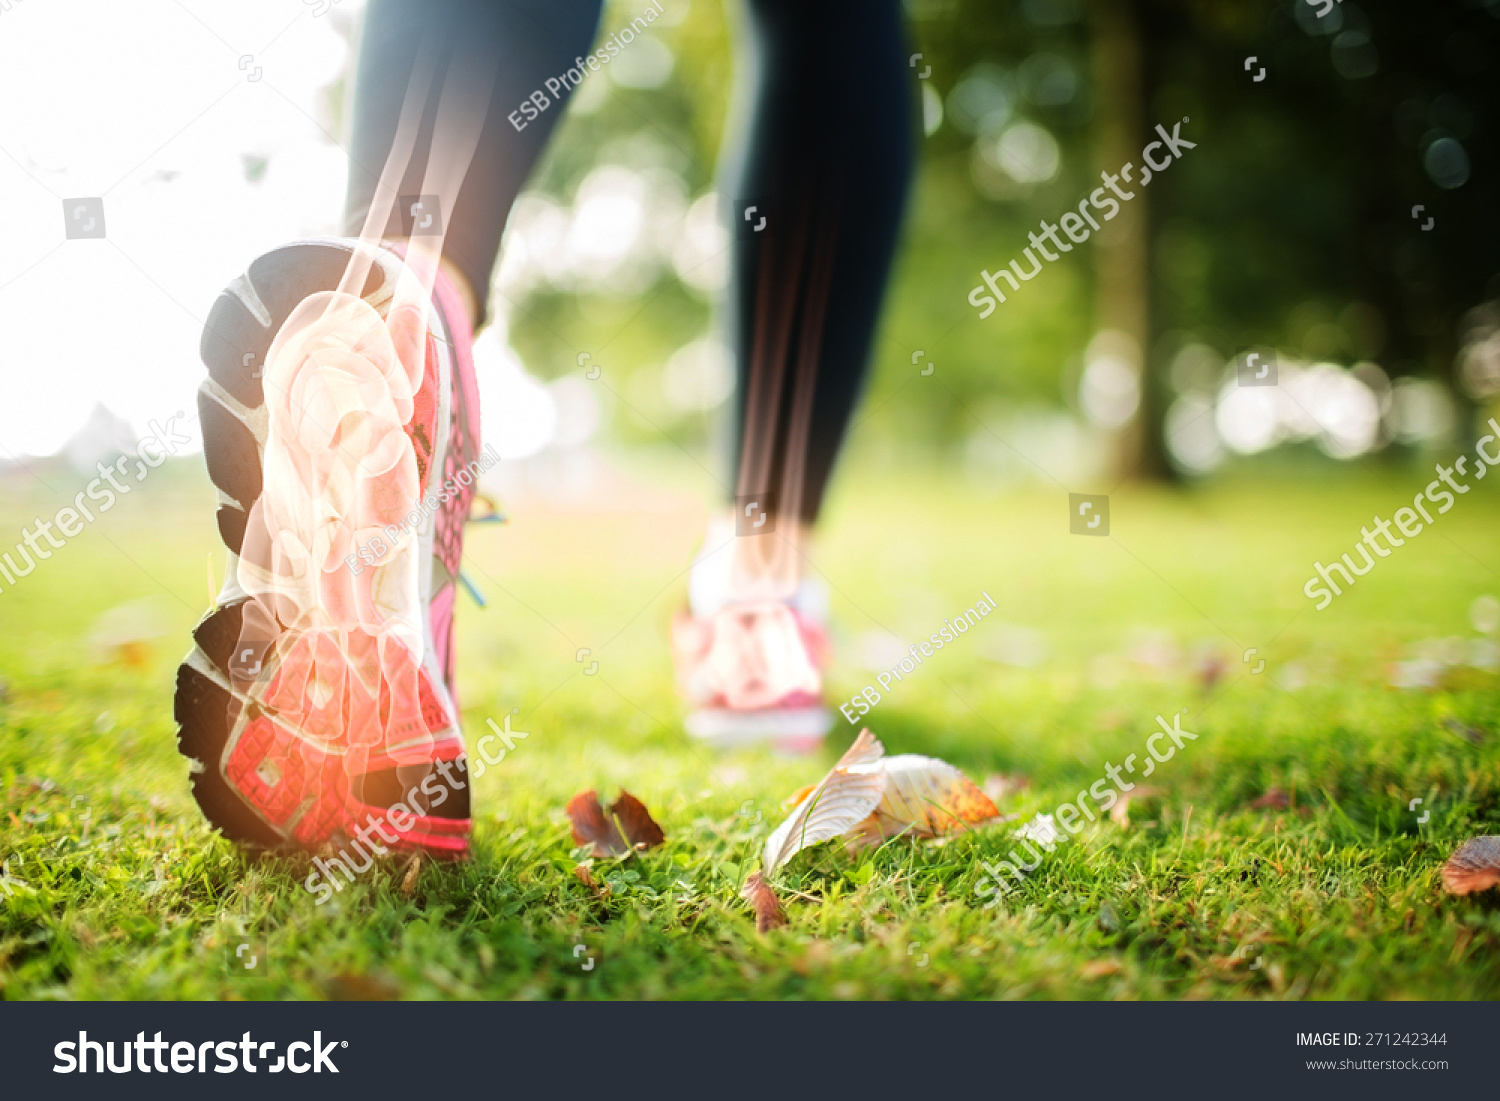 Digital composite of Highlighted foot bones of jogging woman #271242344